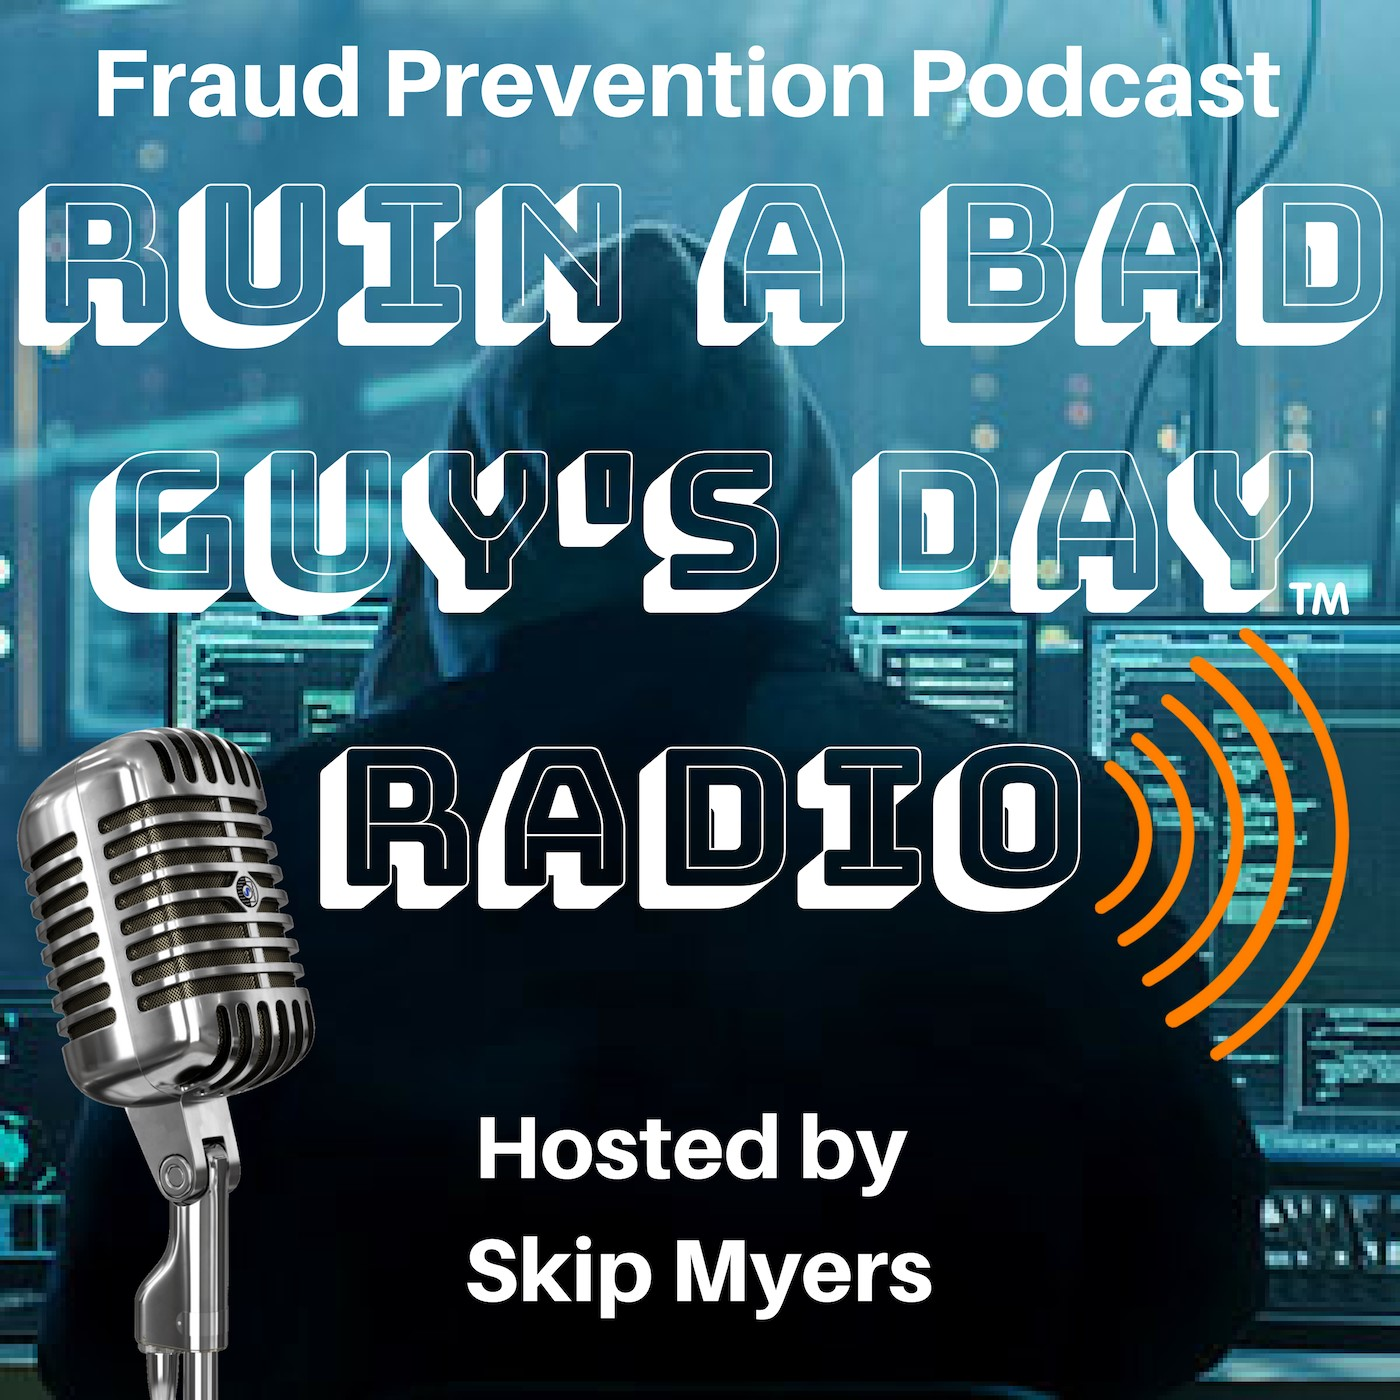 Ruin a Bad Guy's Day Radio - Fraud Prevention Podc